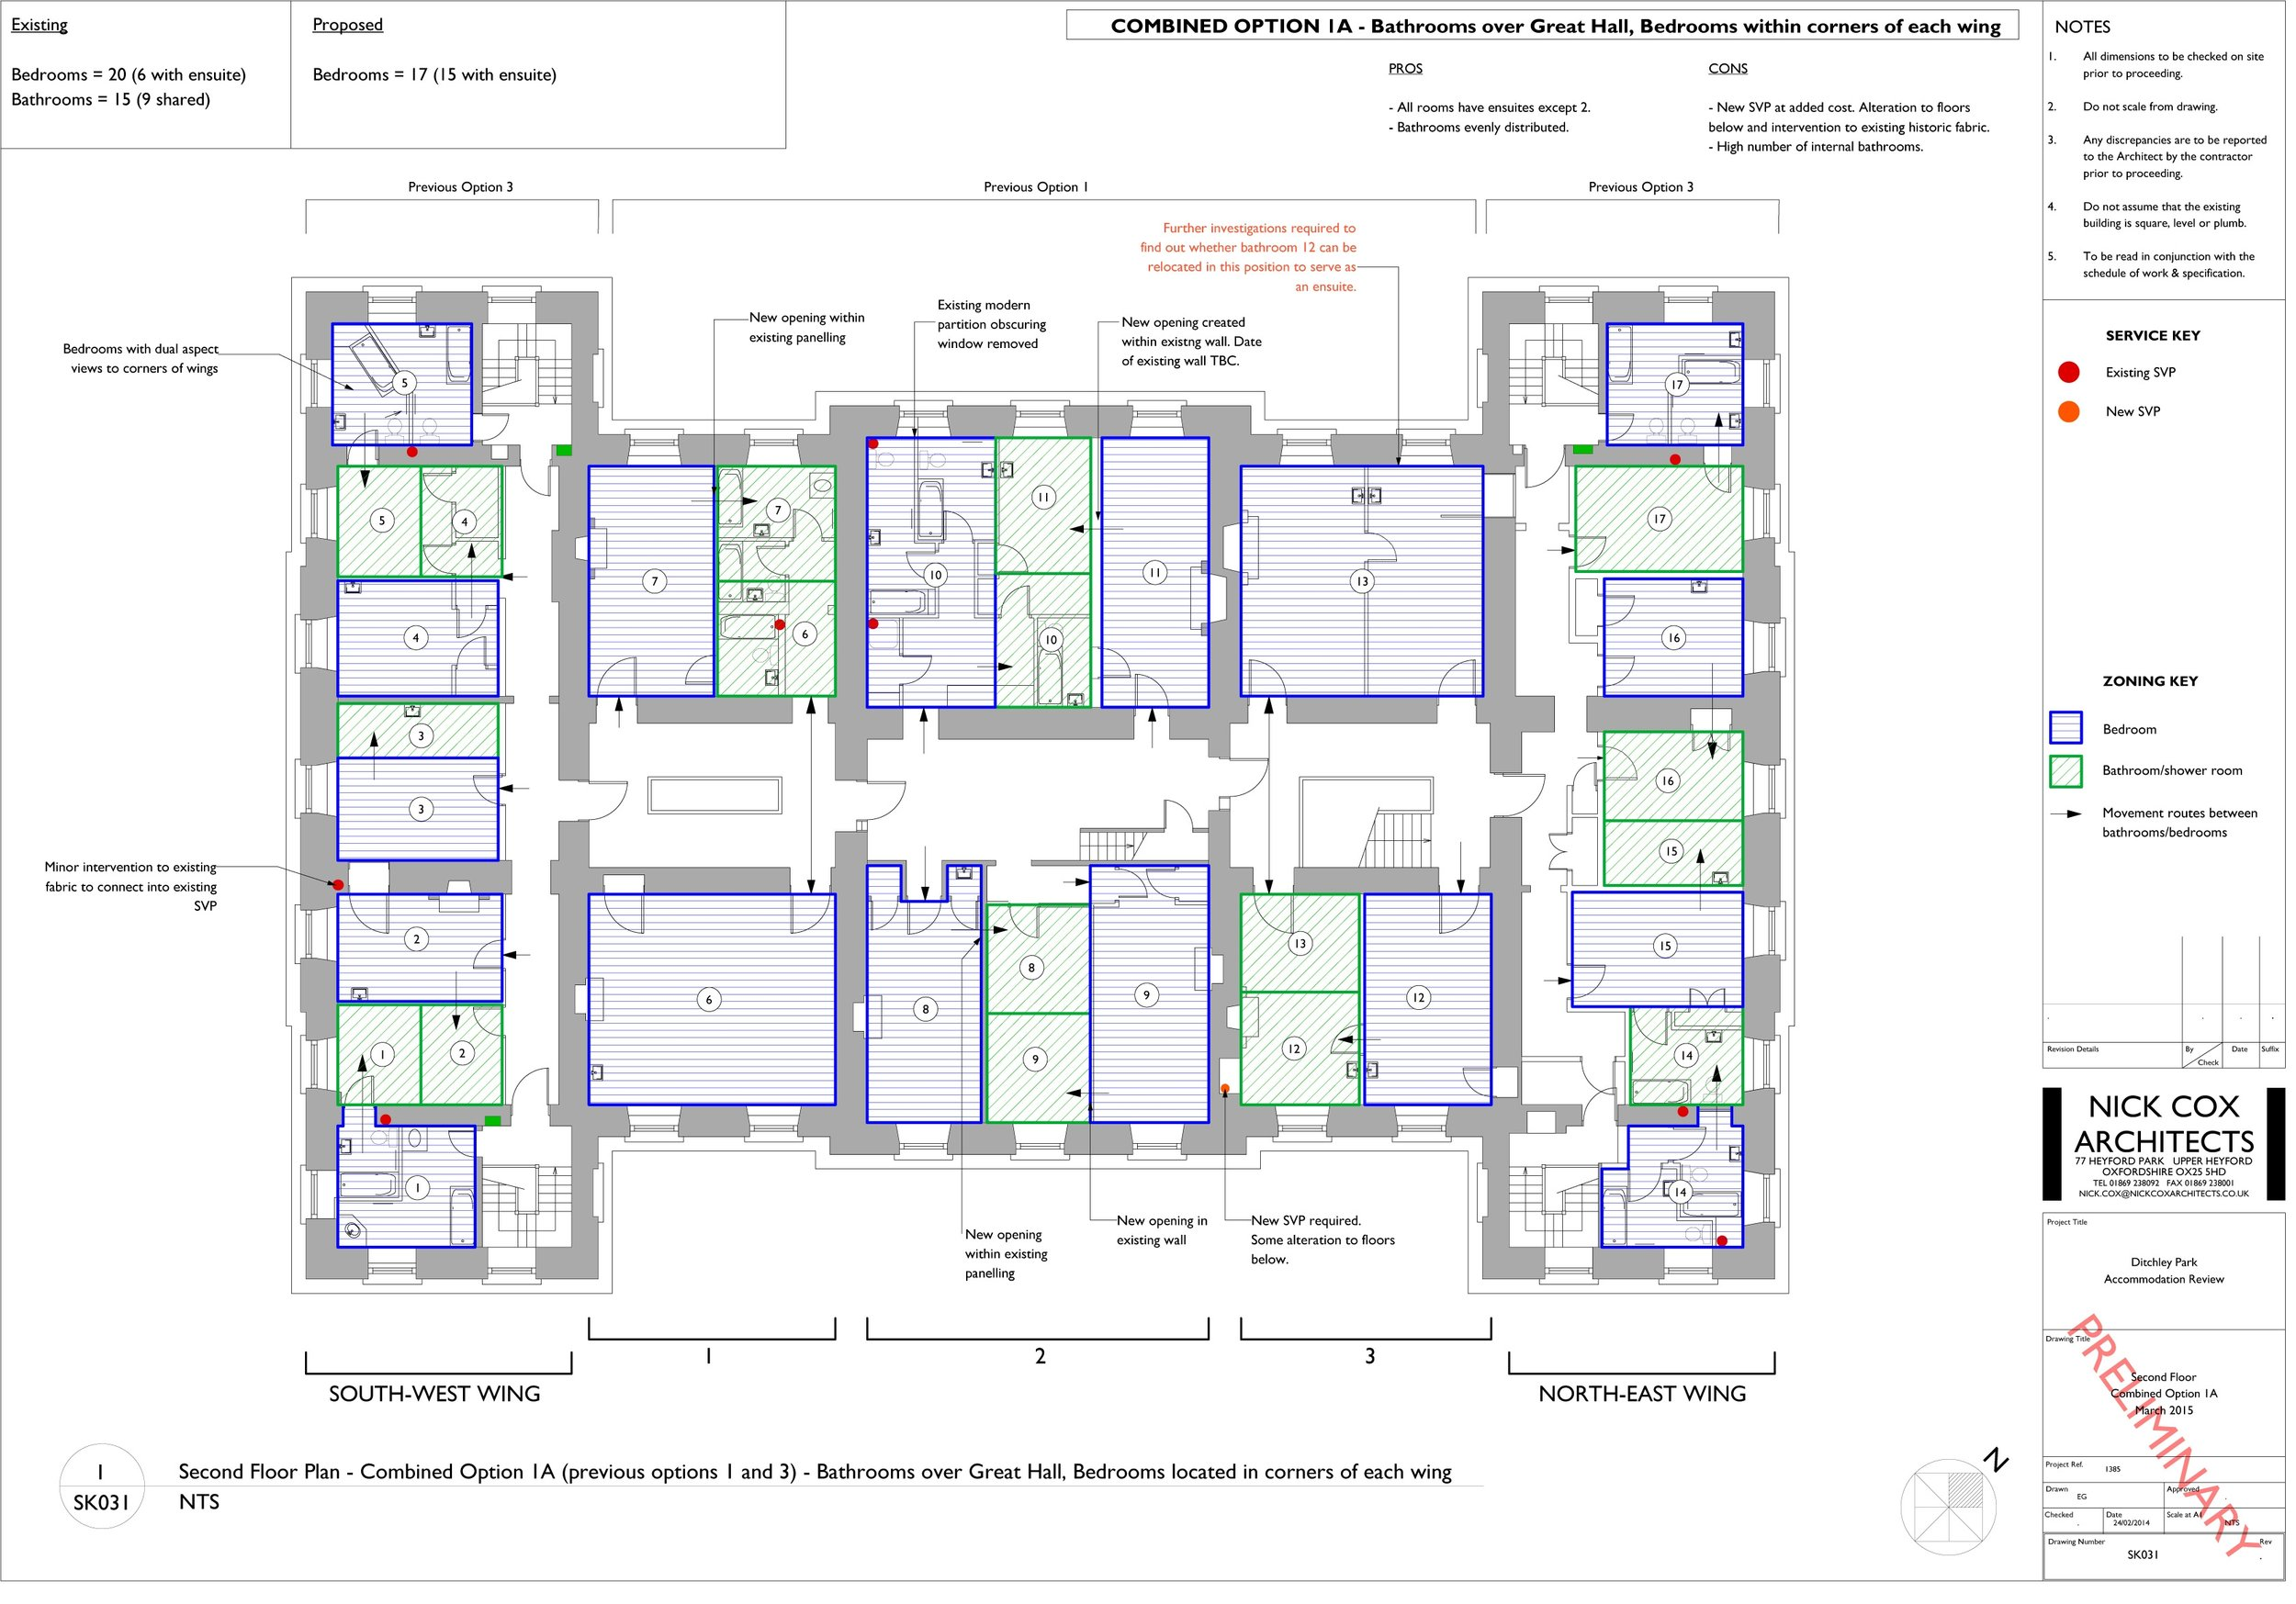 Second Floor - Extract from Feasibility Study - Options Appraisal